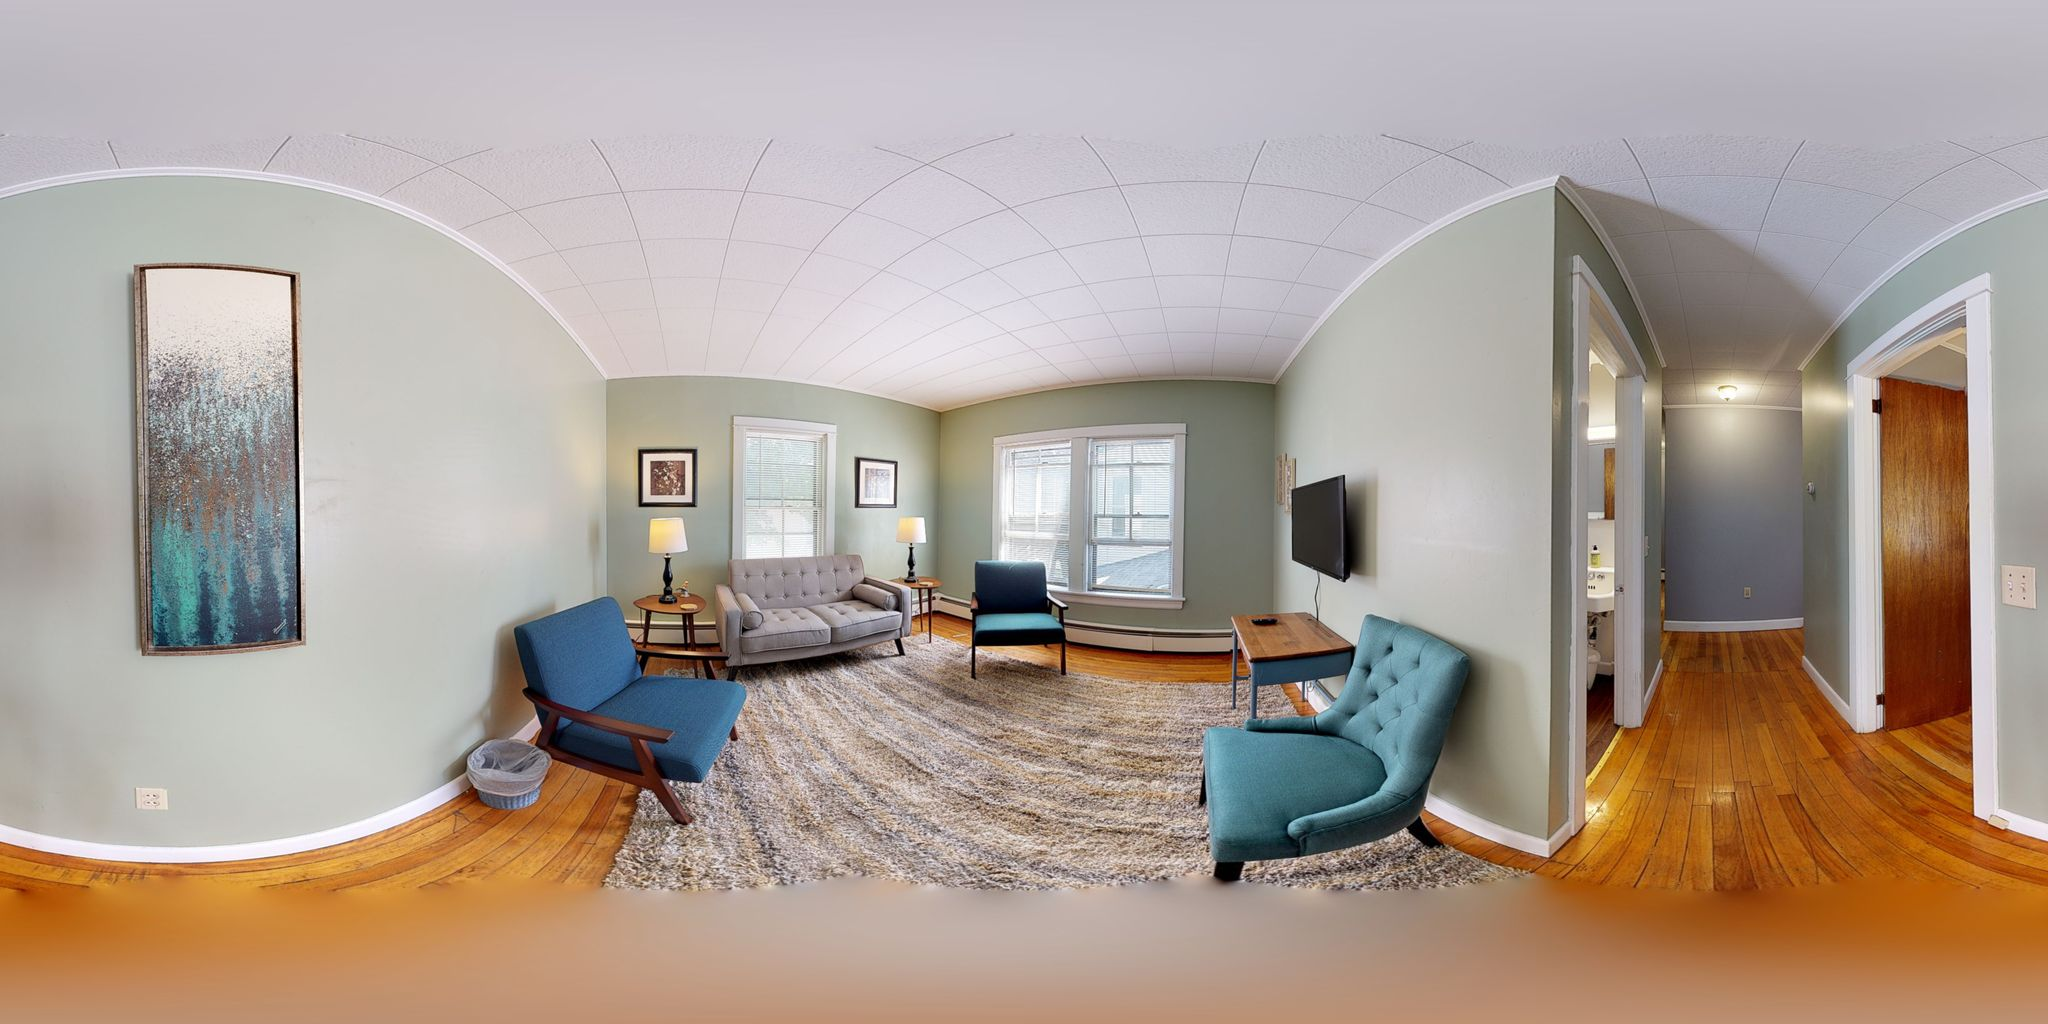 Get an immersive, 360-degree view of the layout and features of this property.